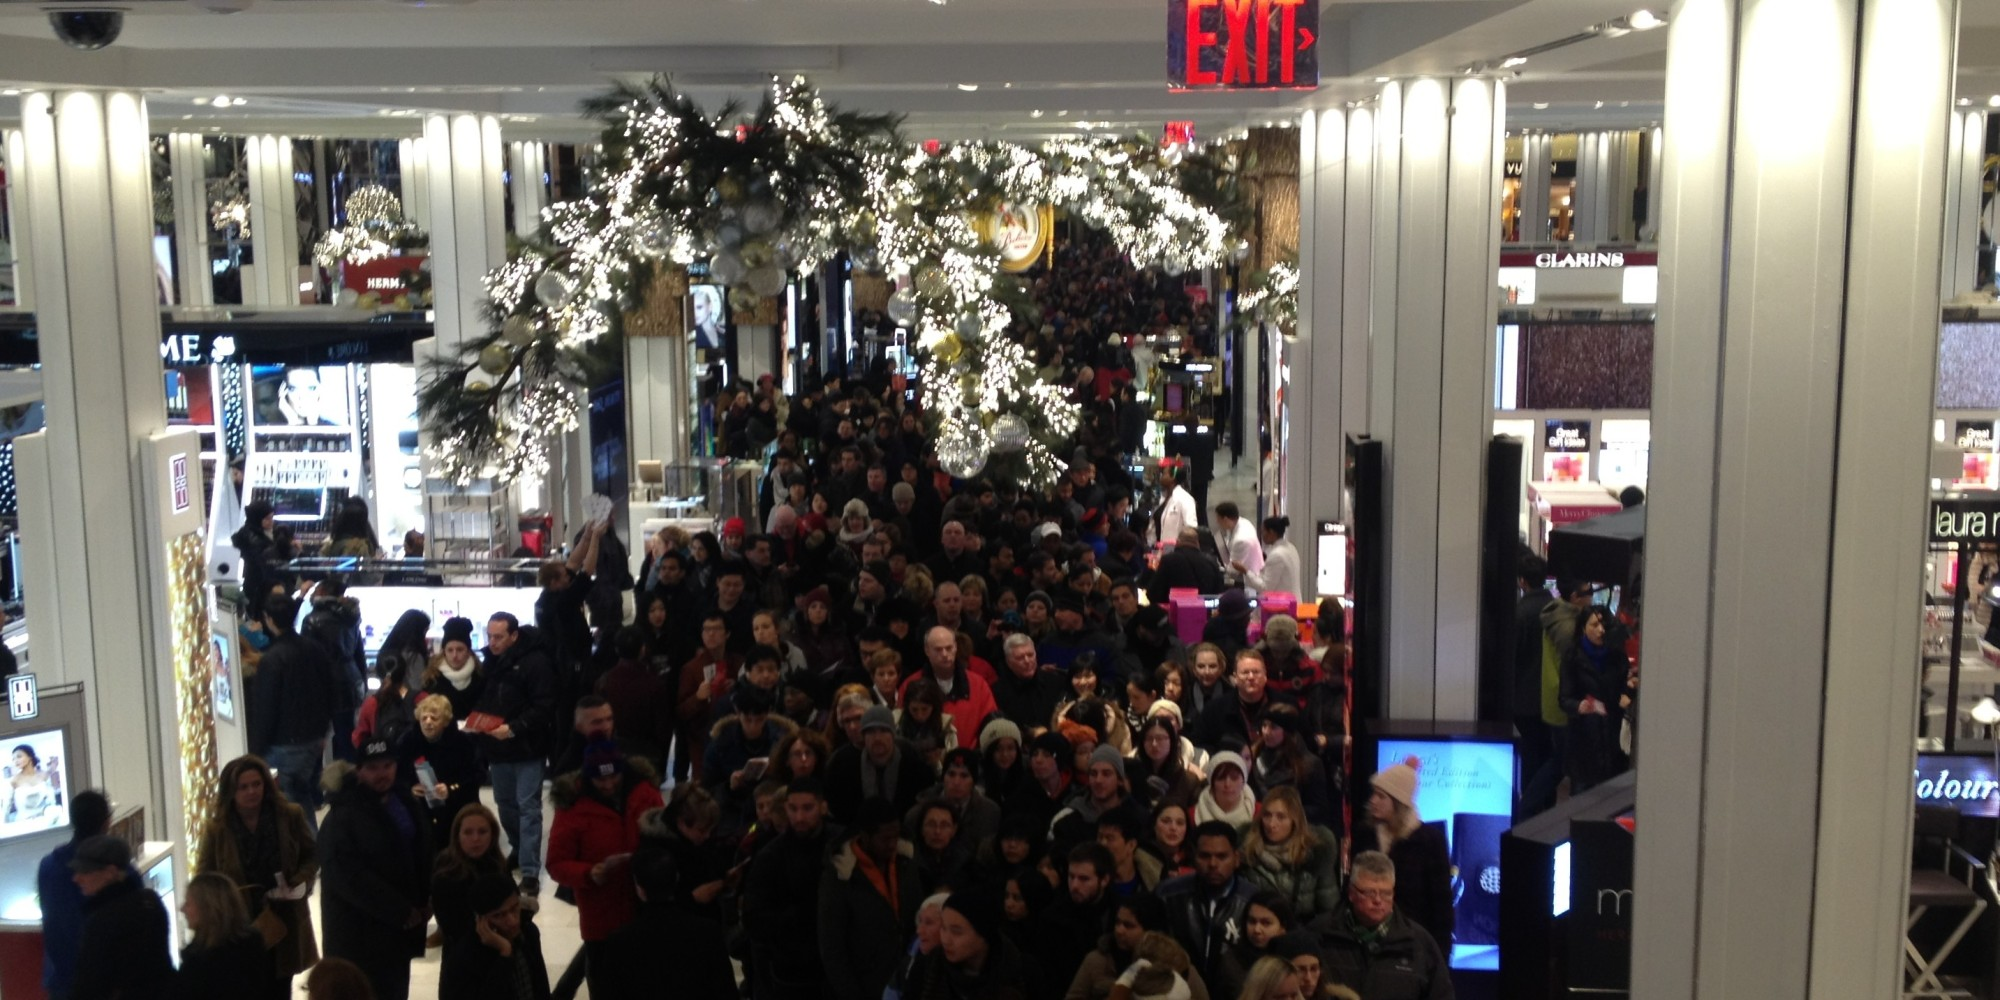 Macy s insite the scene inside the macy s flagship on thanksgiving was